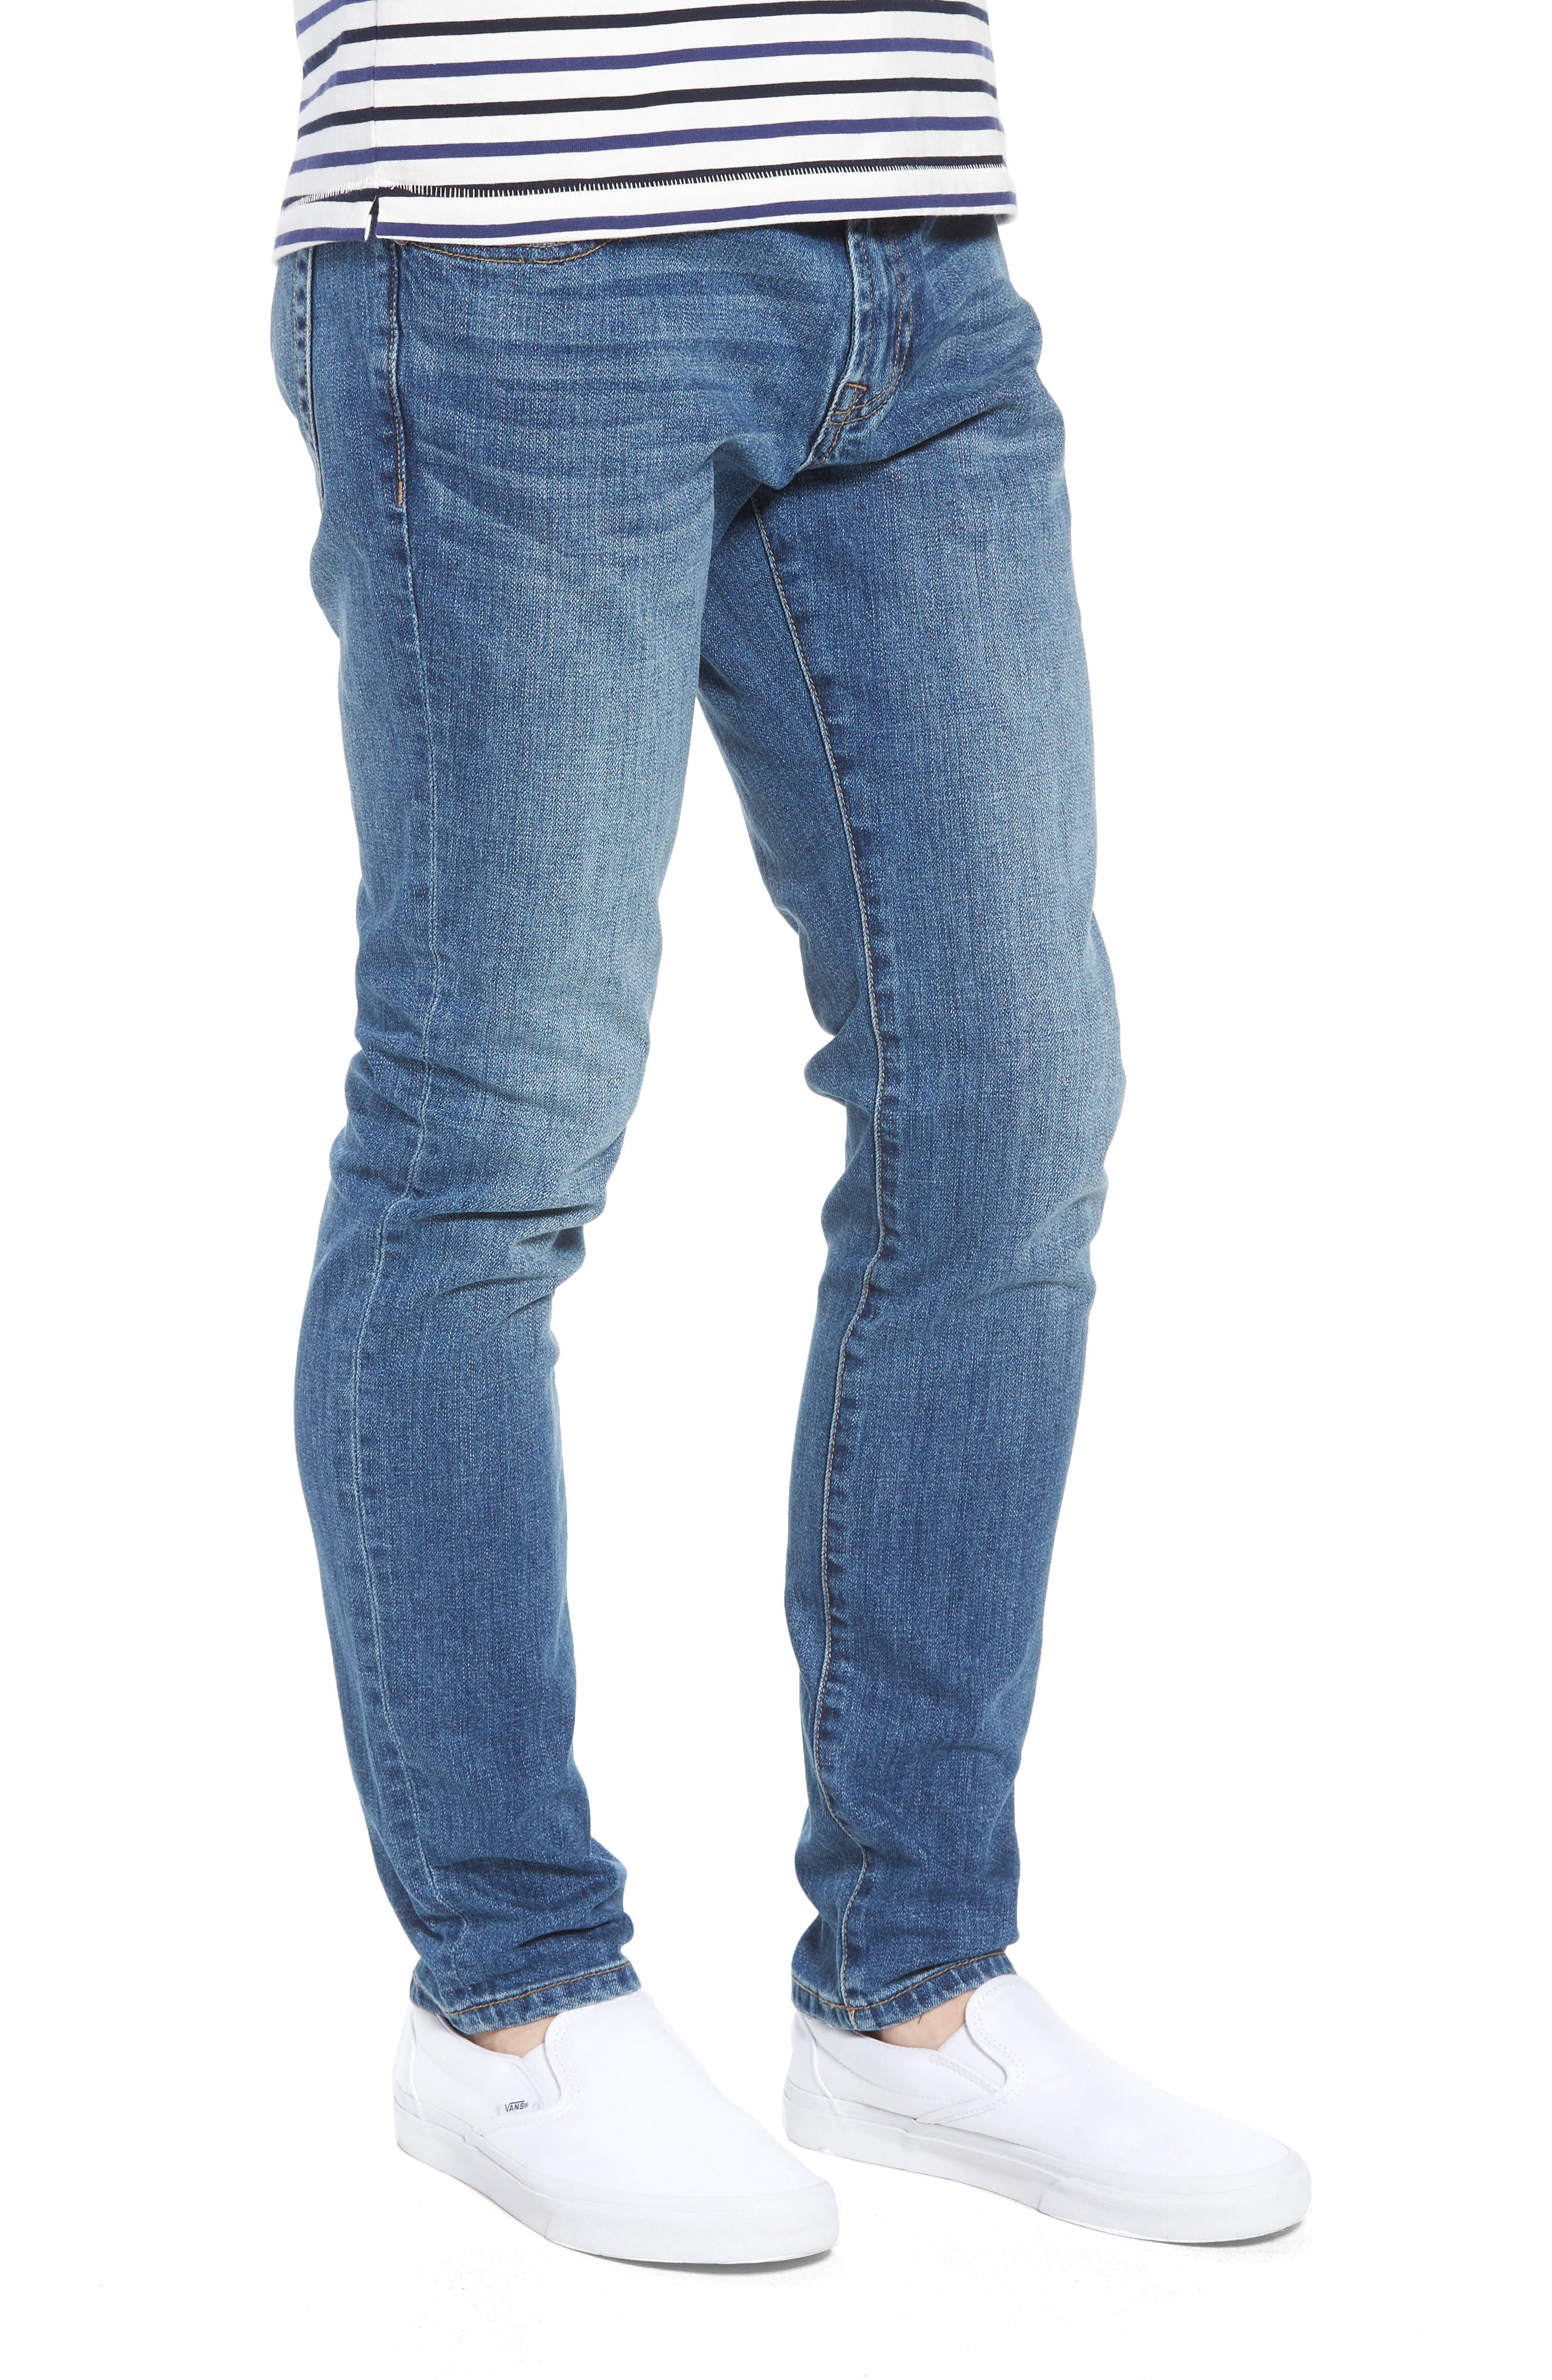 Jeans Co. Bond Skinny Fit Jeans,                             Alternate thumbnail 3, color,                             401